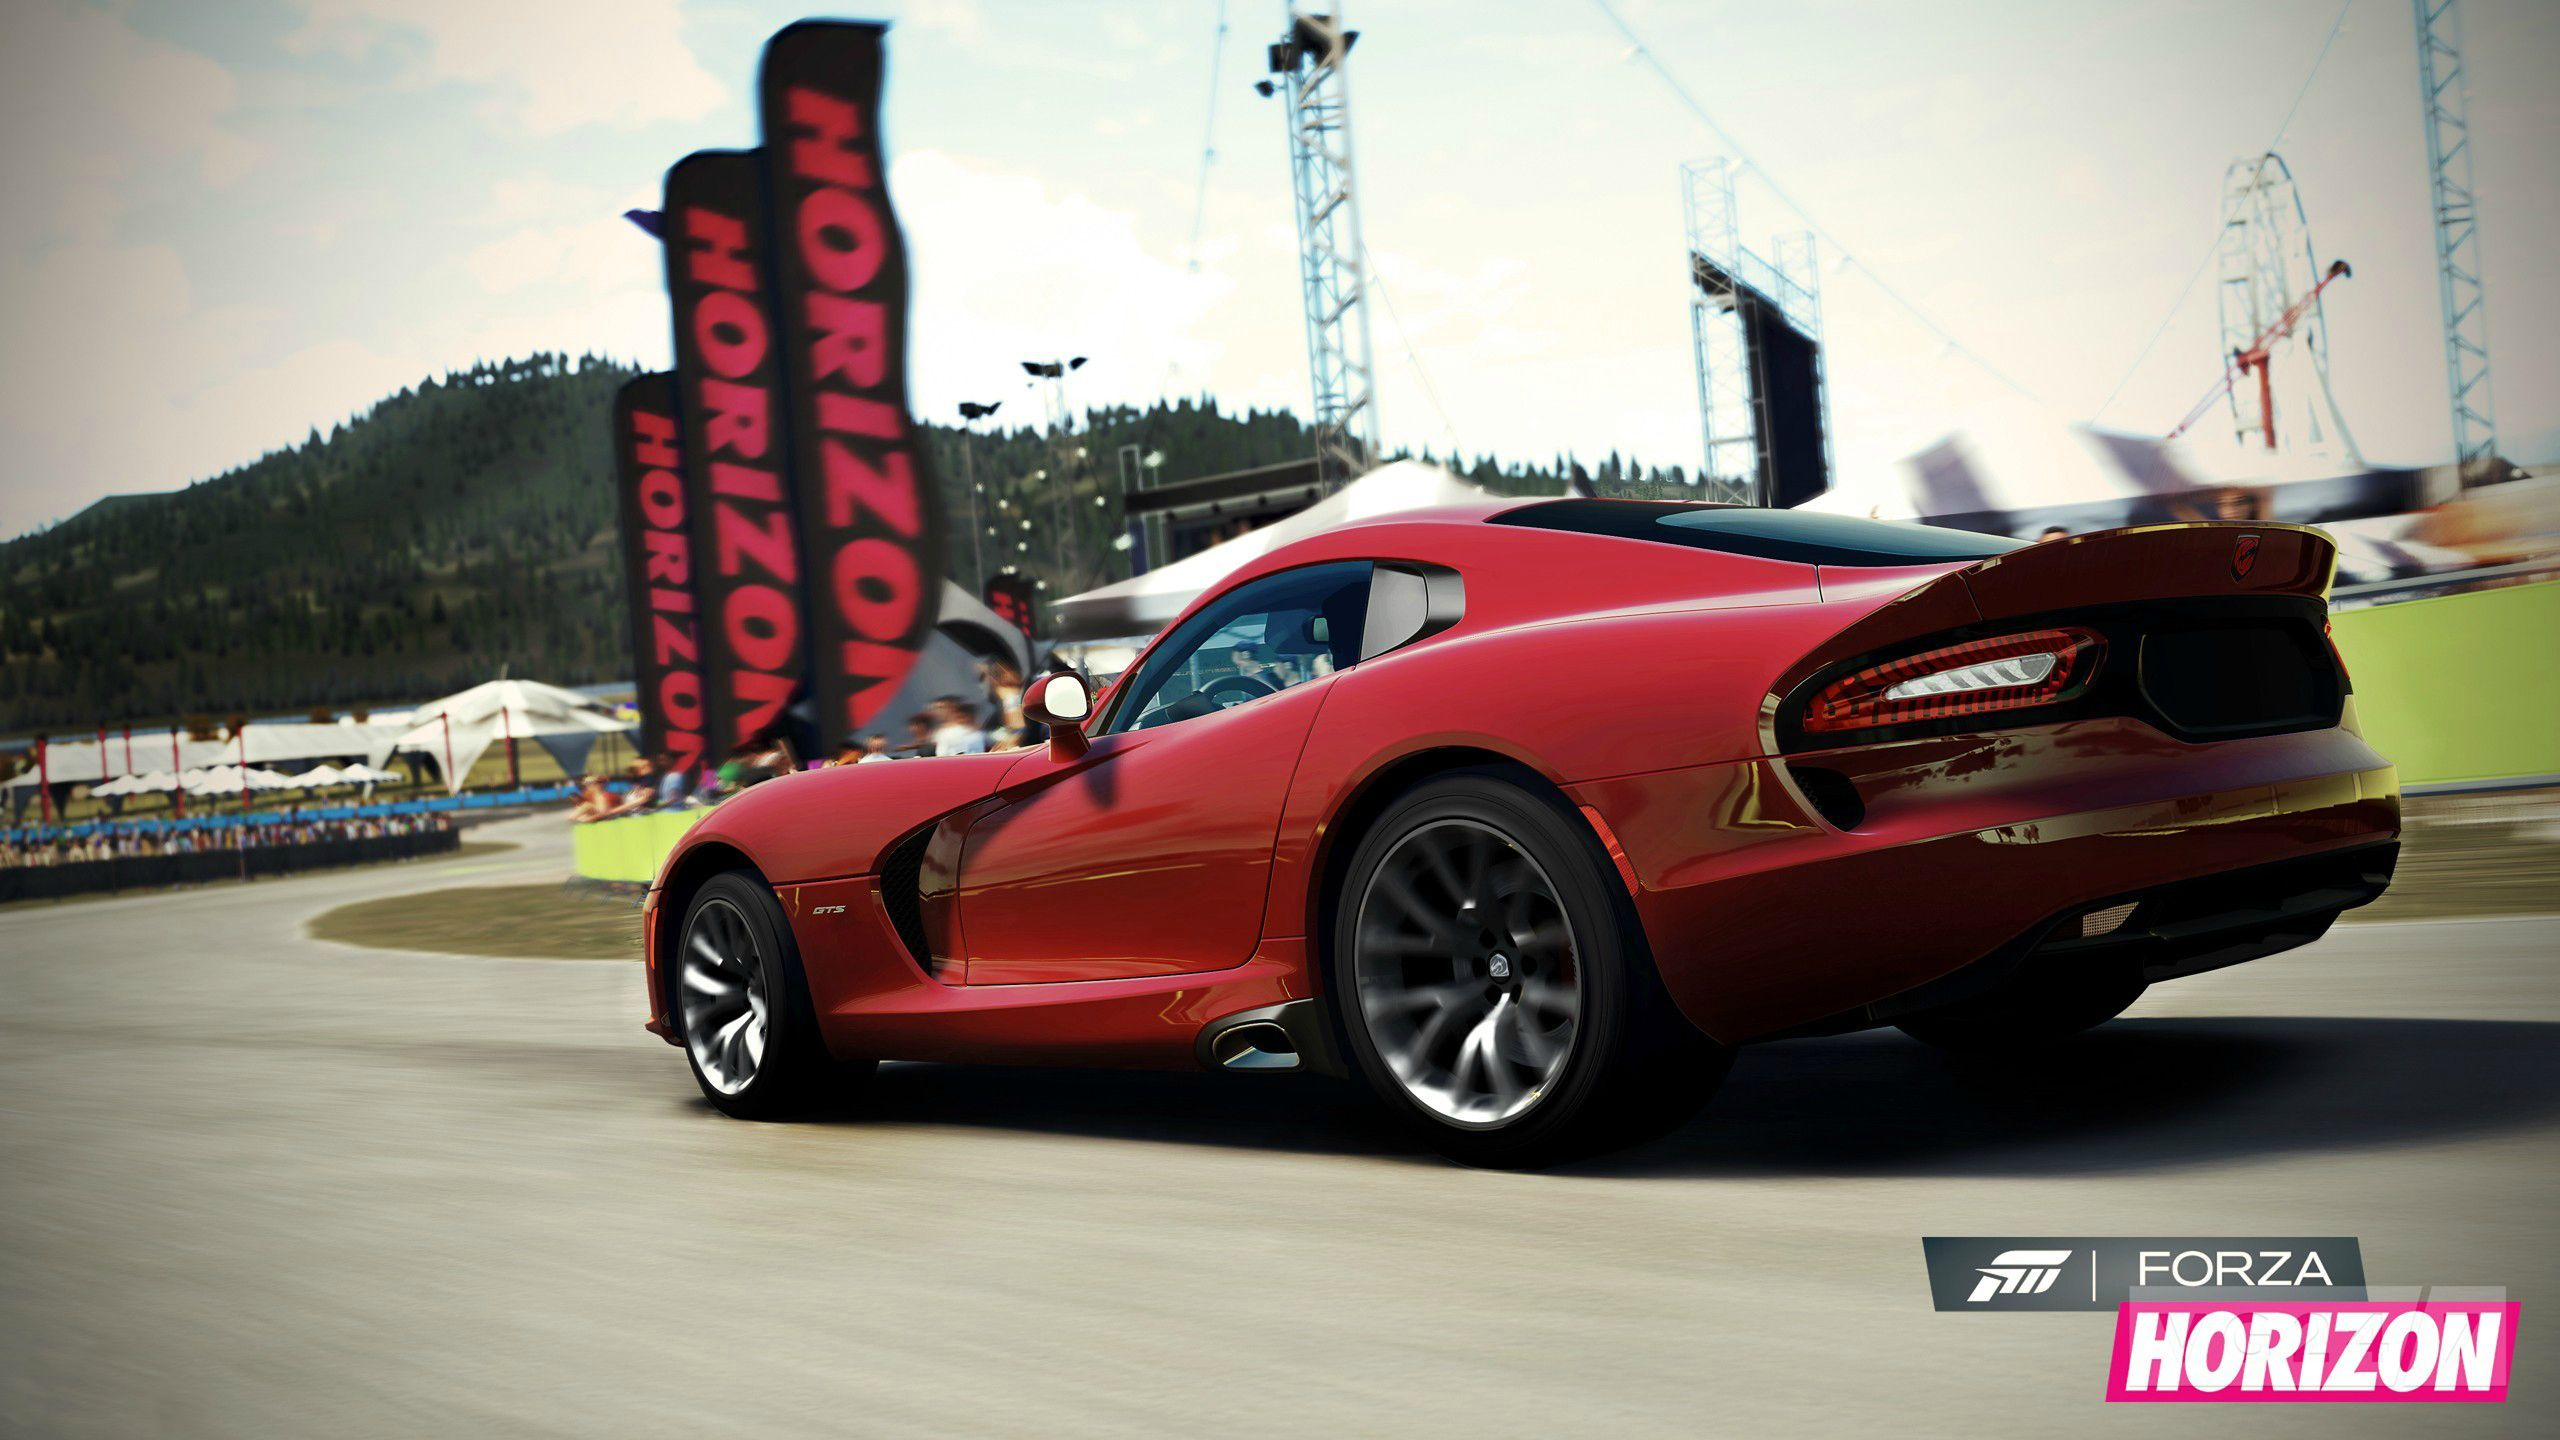 forza horizon shots details surface ahead of e3 vg247. Black Bedroom Furniture Sets. Home Design Ideas